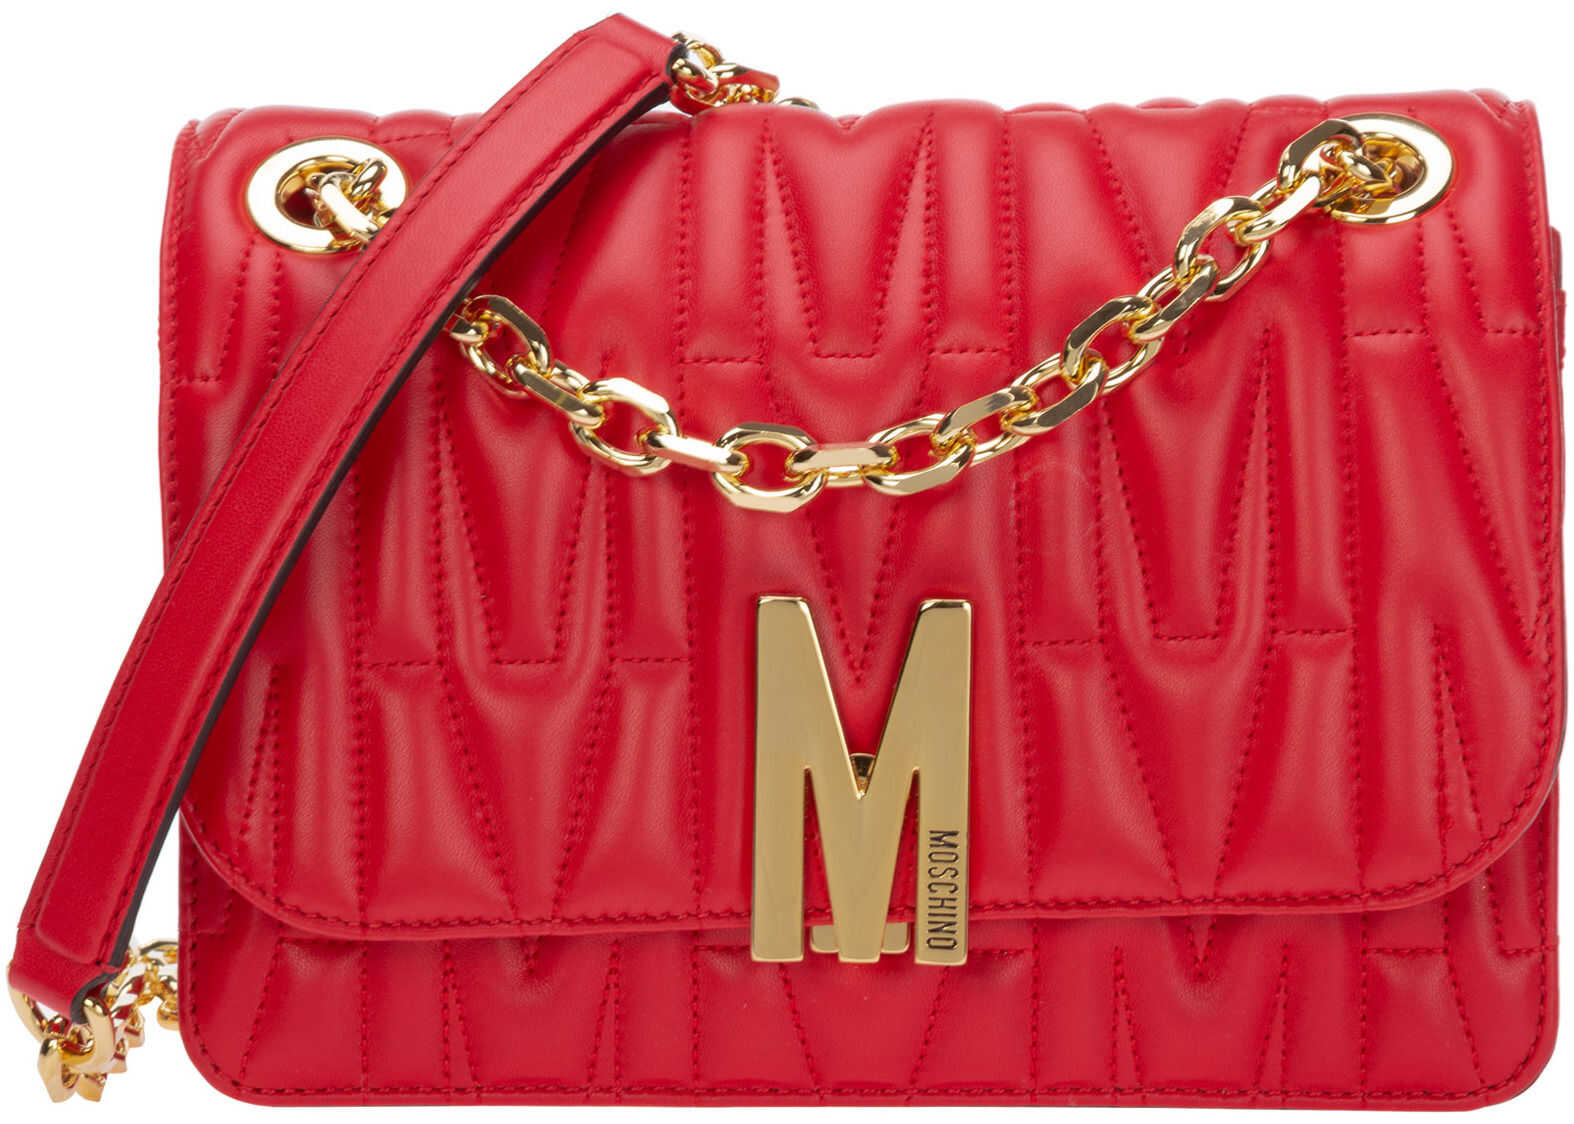 Moschino Bag M Red